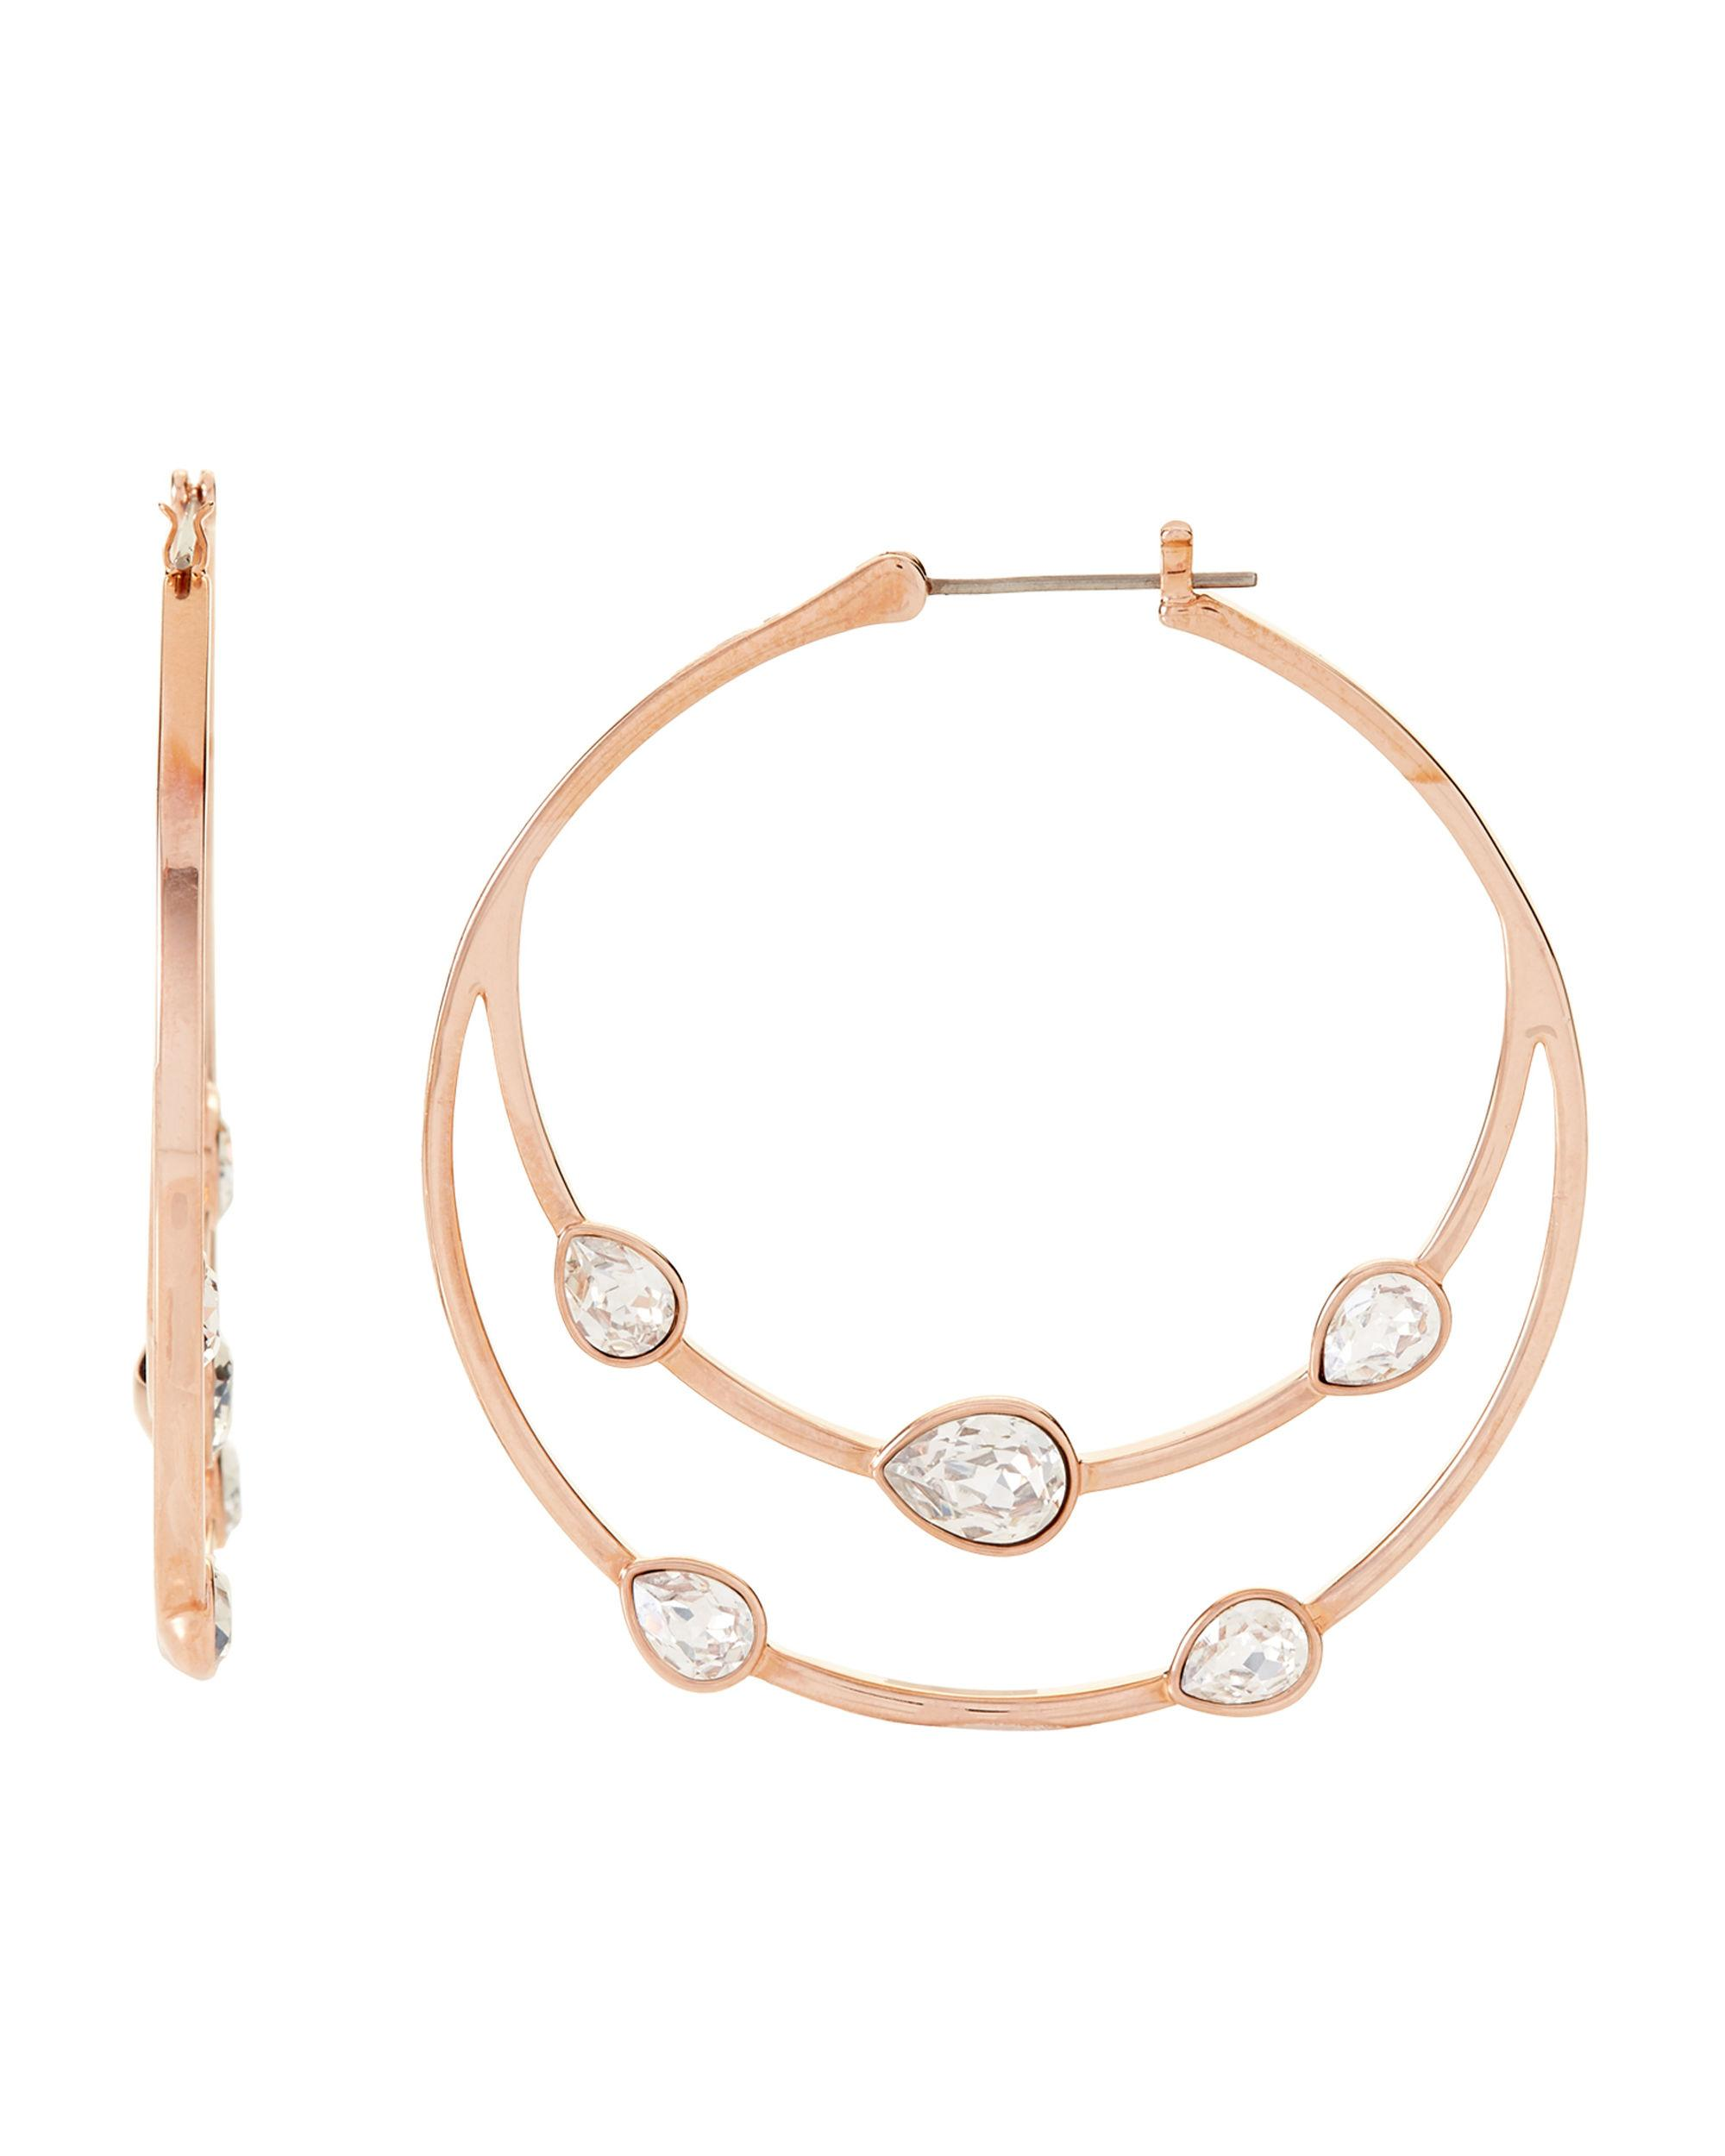 93b29551b Swarovski. Women's Metallic Rose Gold-tone Gaze Embellished Hoop Earrings